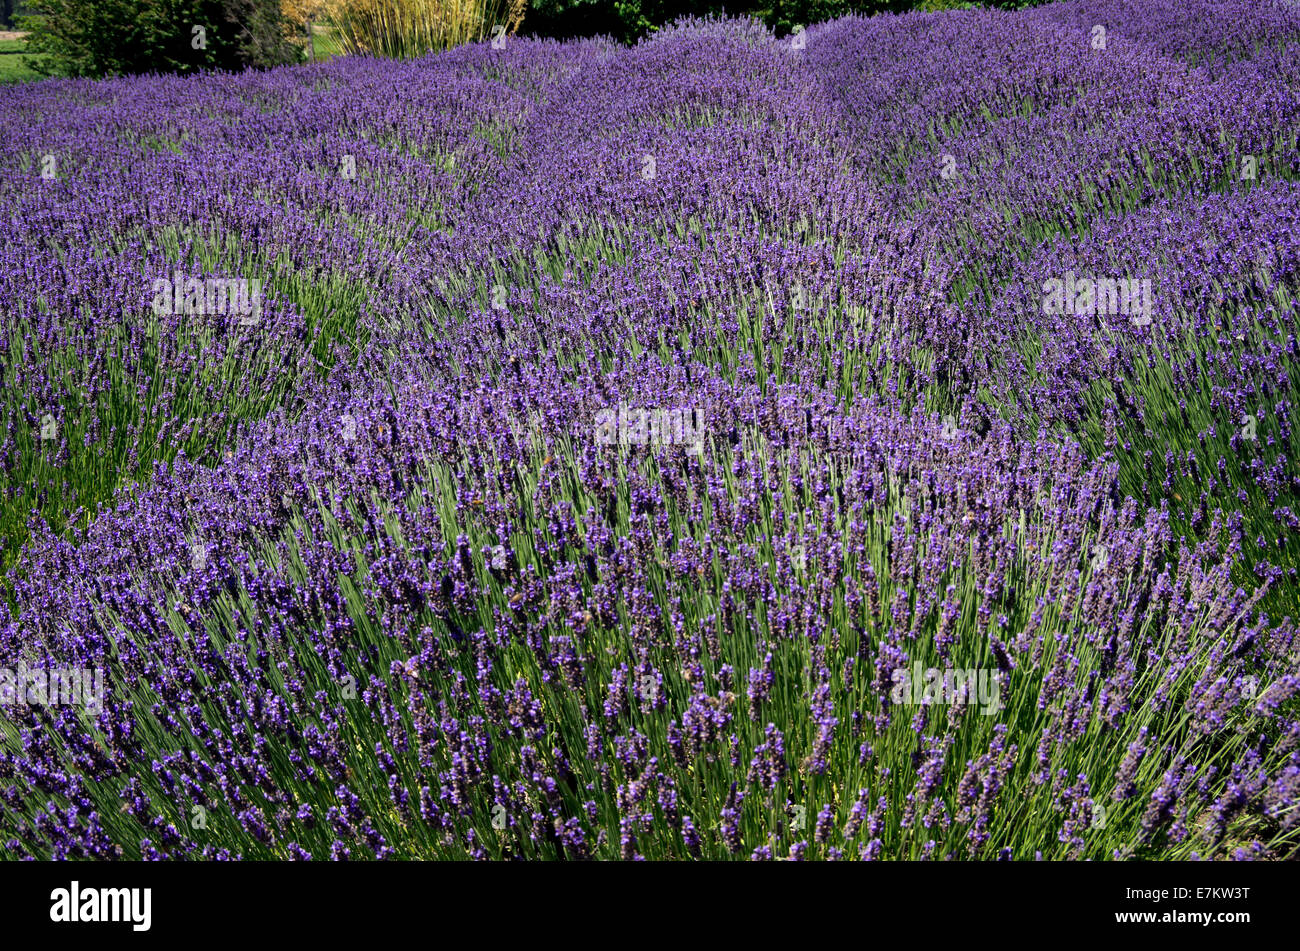 Lavender Field Light And Dark Purple Flowers In Plant Mounds Stock